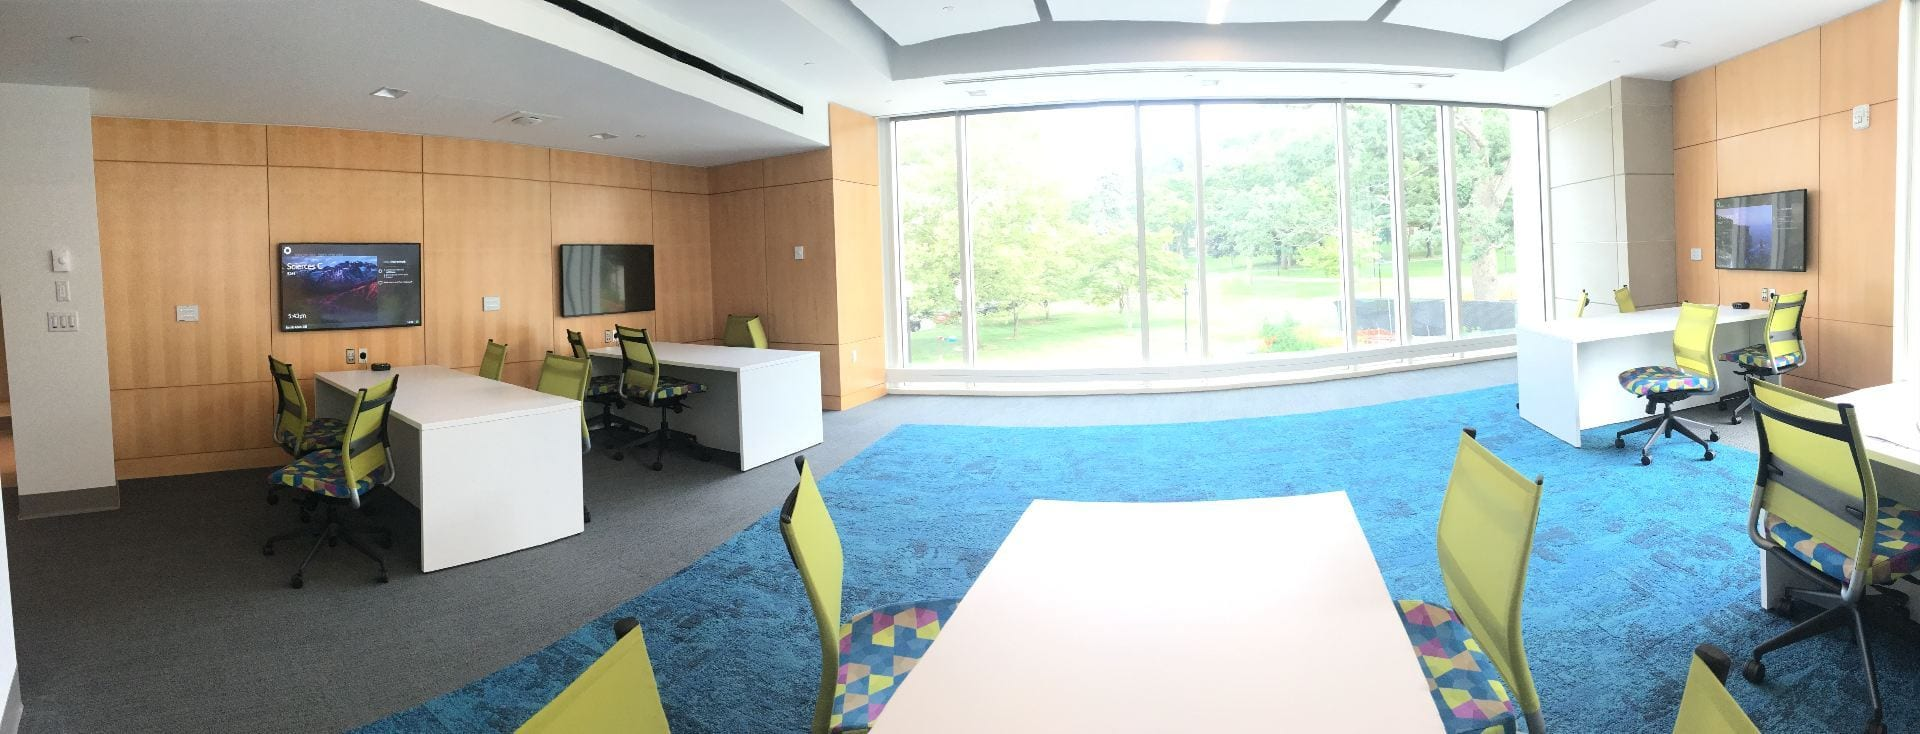 Science complex student commons area